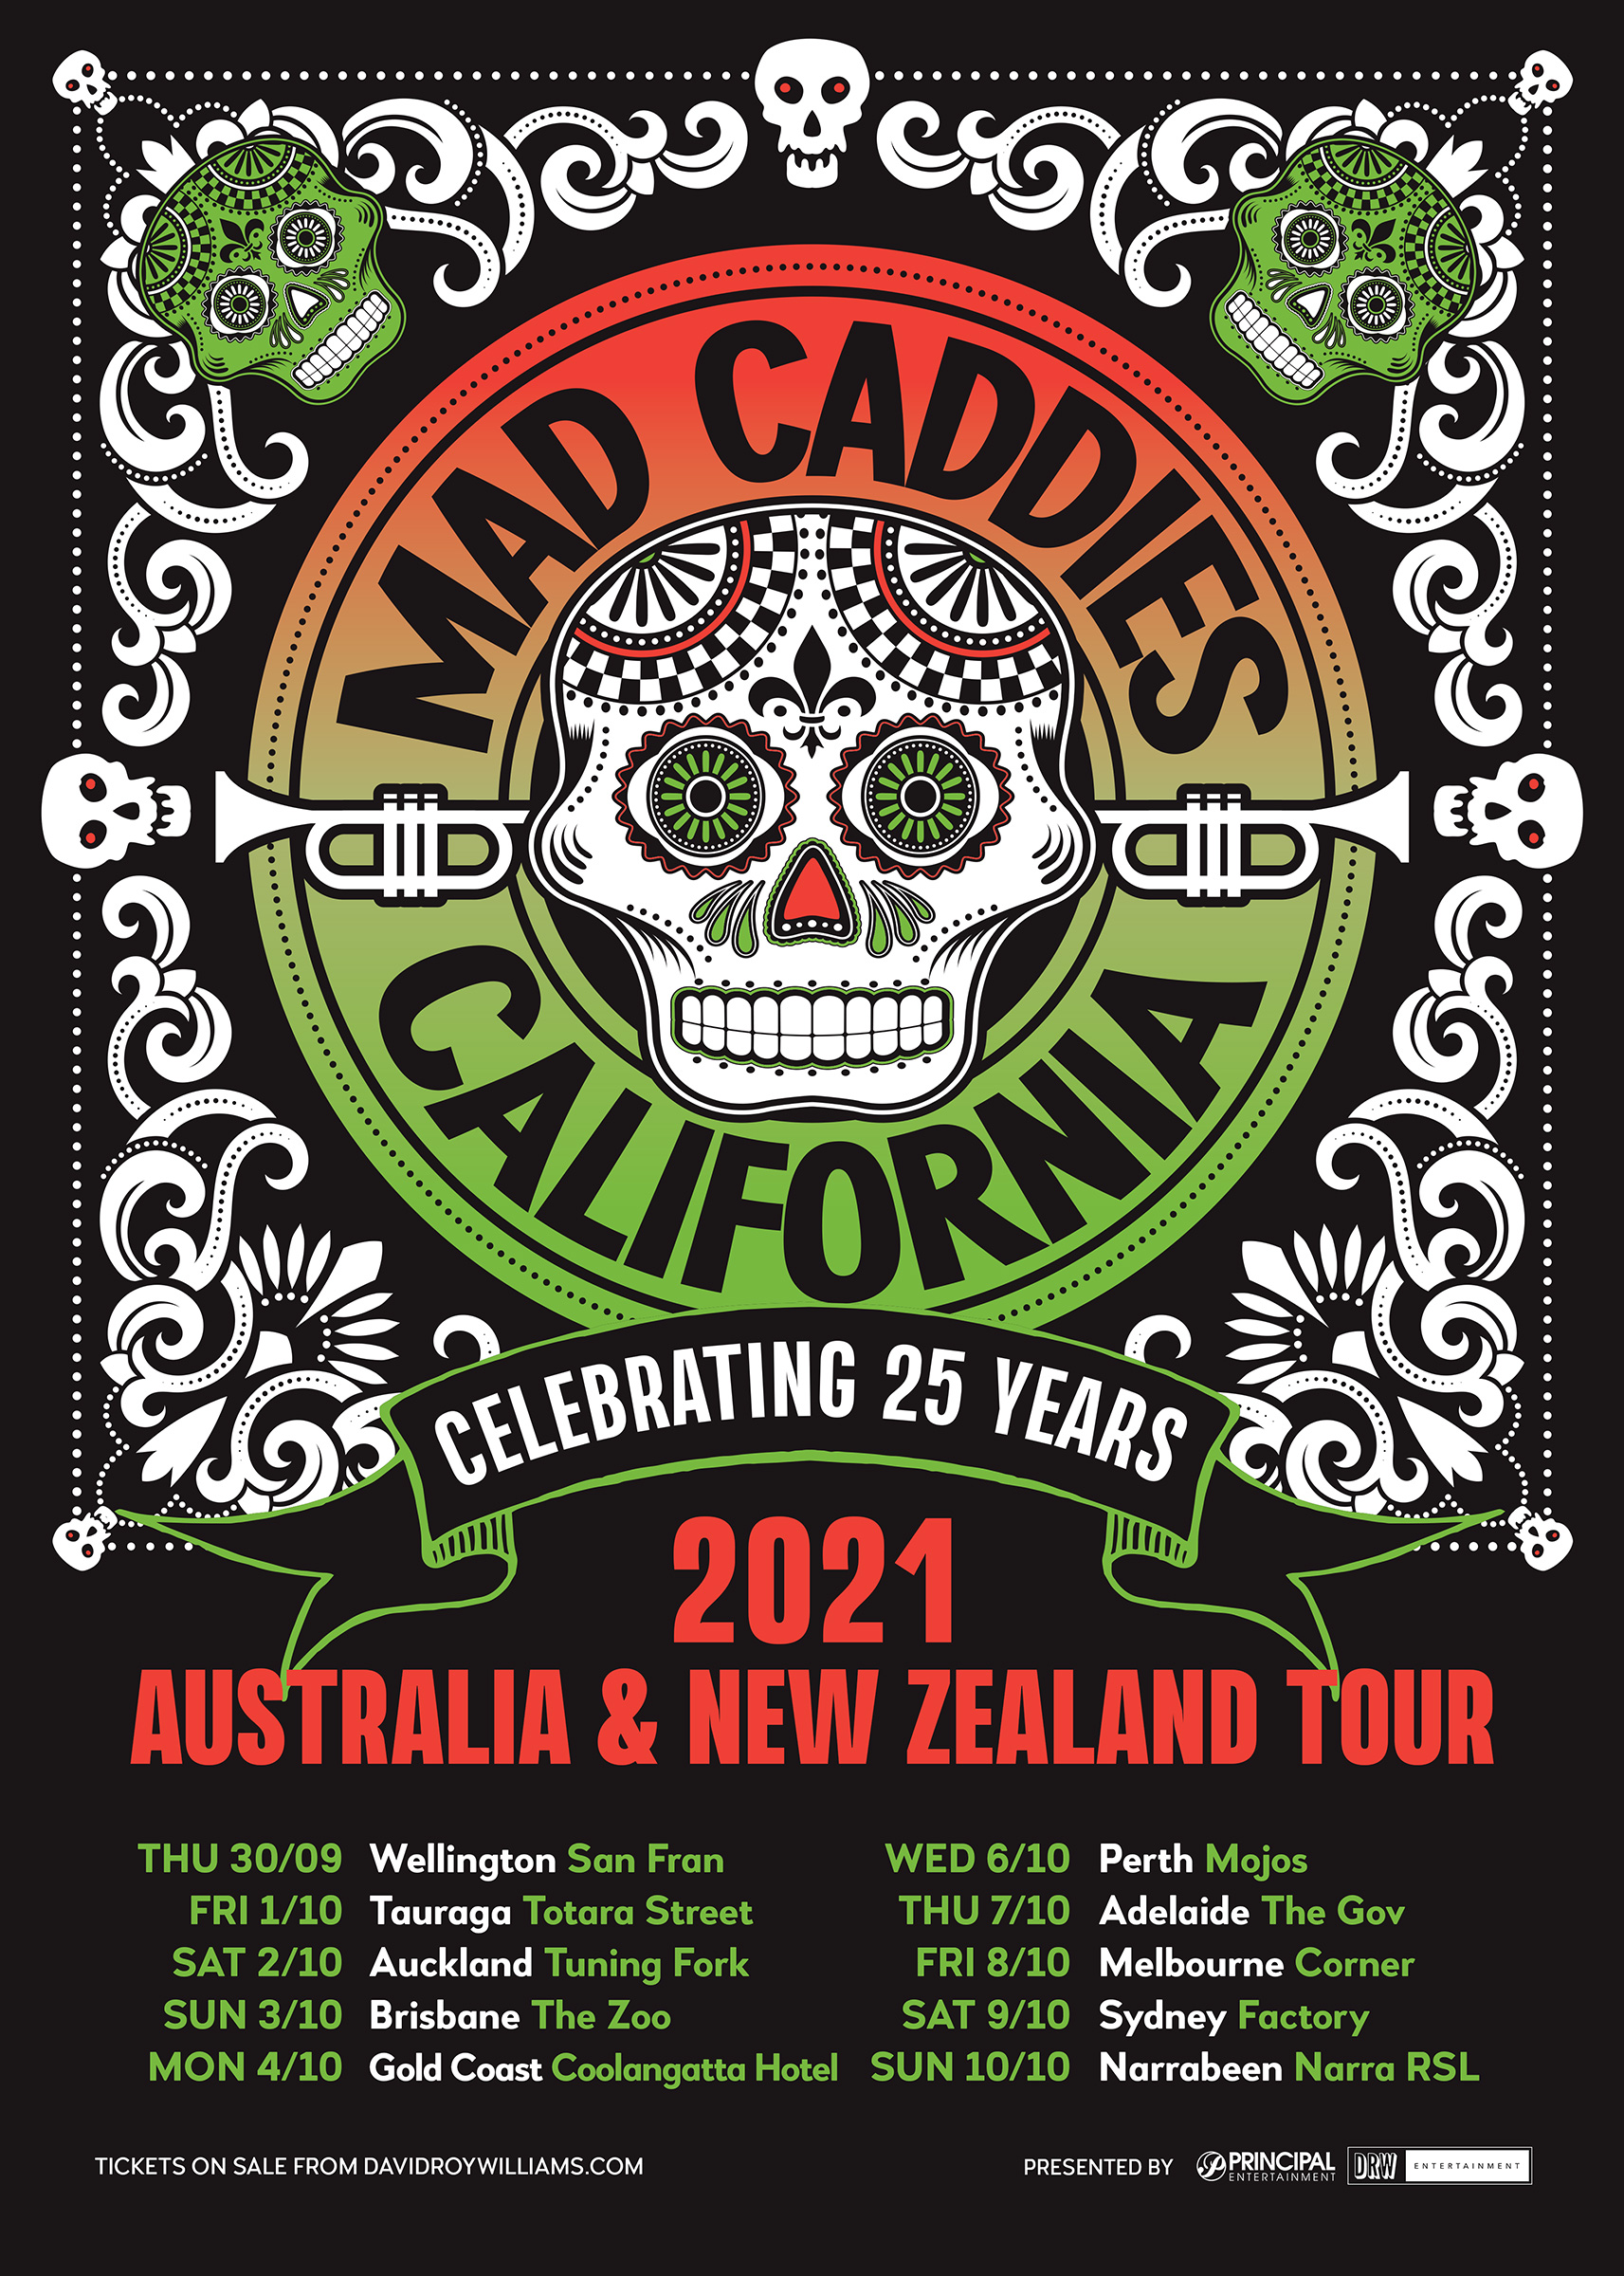 Bad manners dates 2020